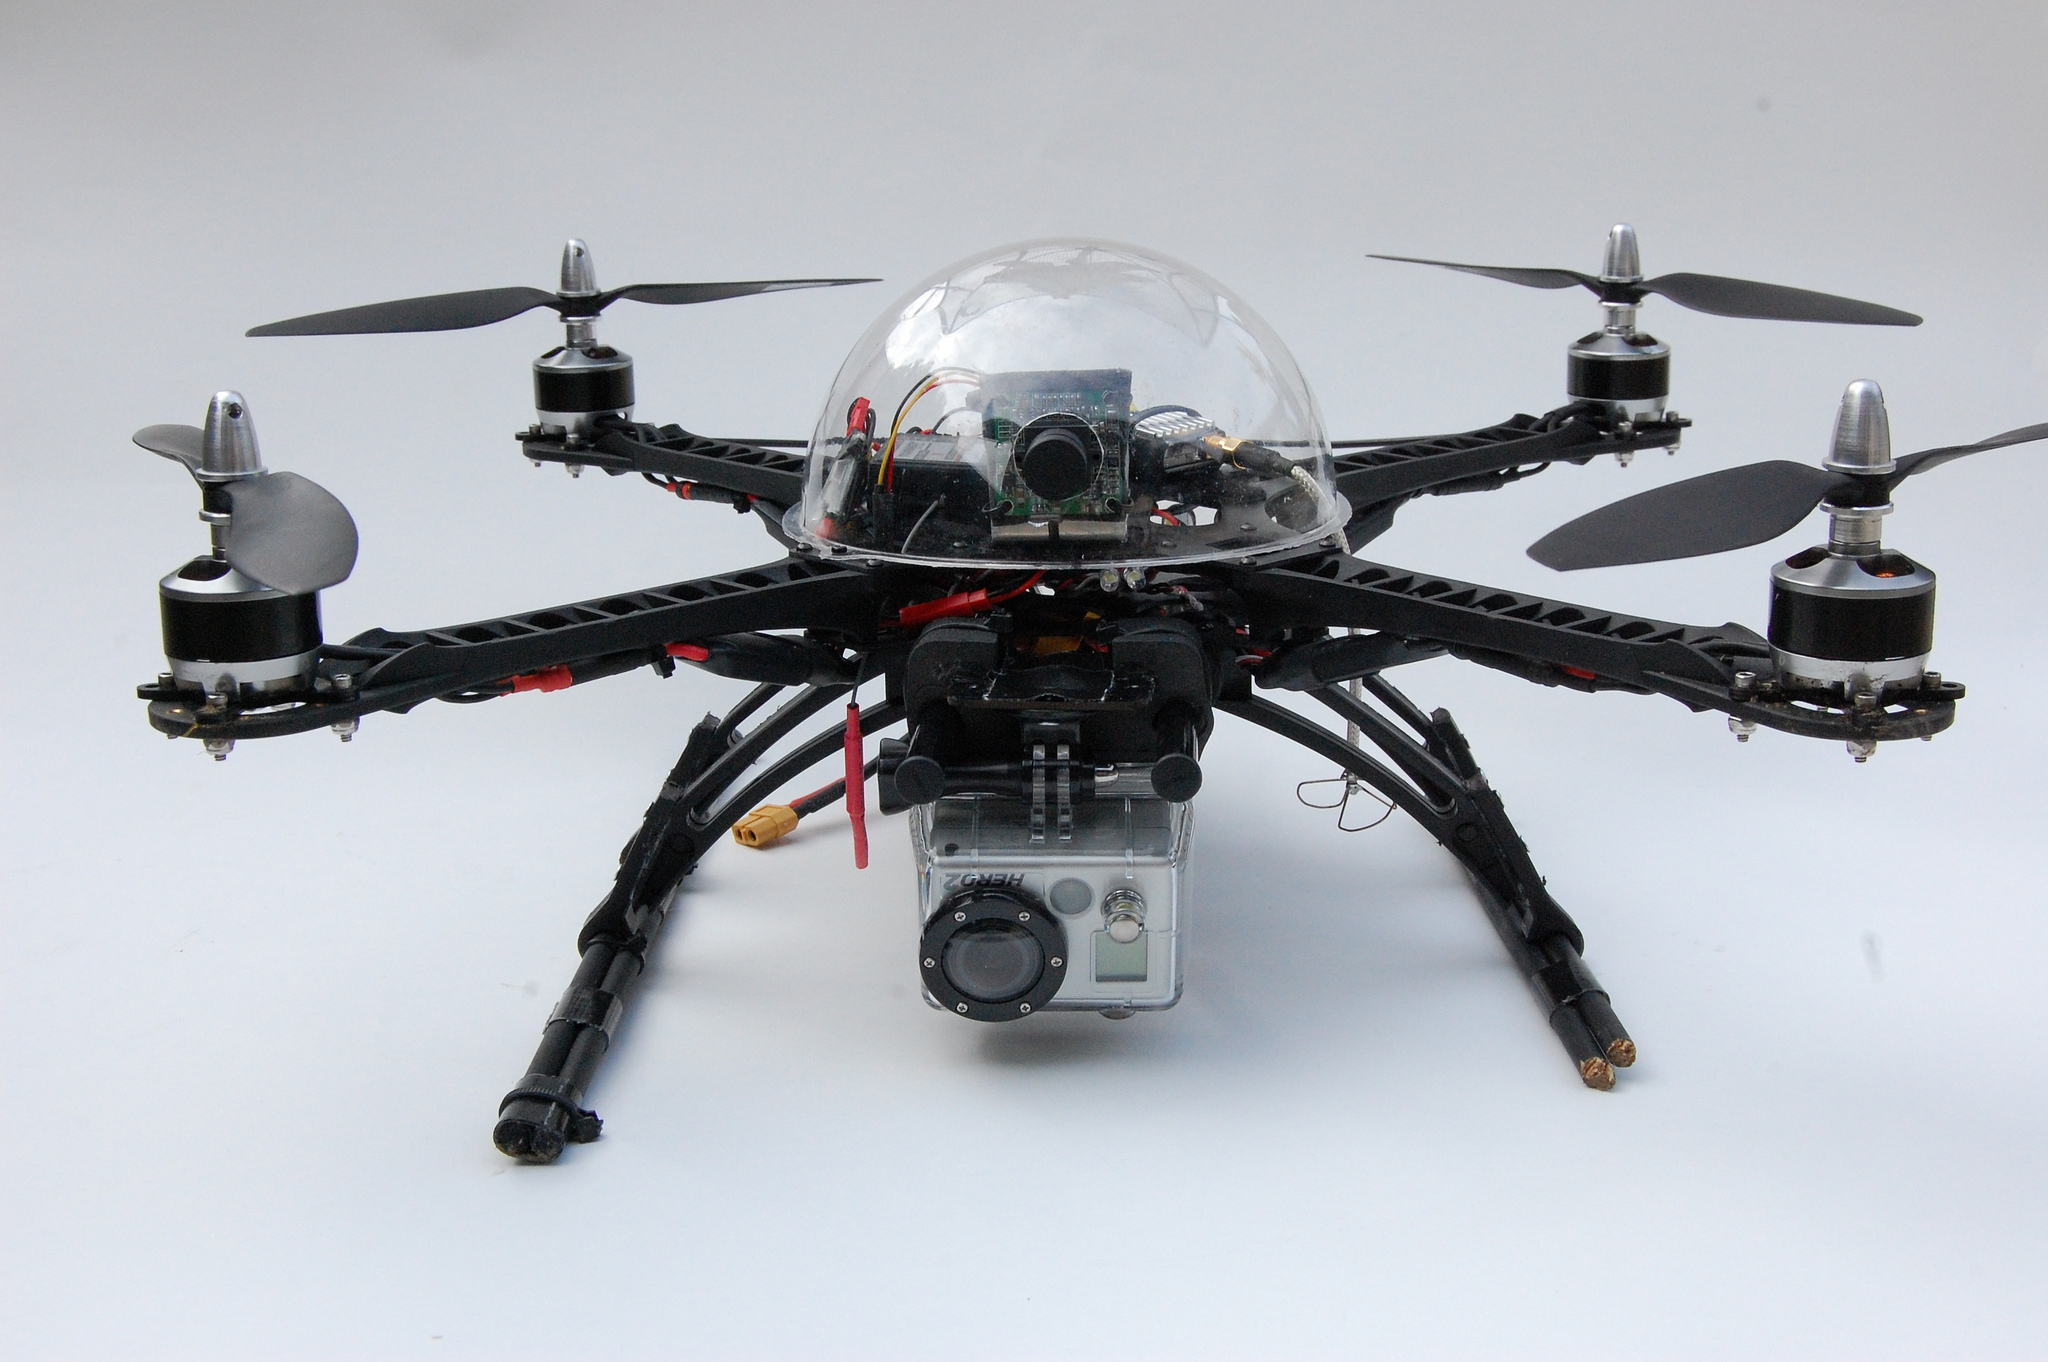 huge rc heli with Nasa Quadcopter Drone on Heli Max 50 60 Size Floats Hmxe2005 together with Heli Max Main Drive Gear Novus Cp Hmxe8034 together with Airwolf Rc Helicopter Turbine as well 353884483199204494 moreover Watch.